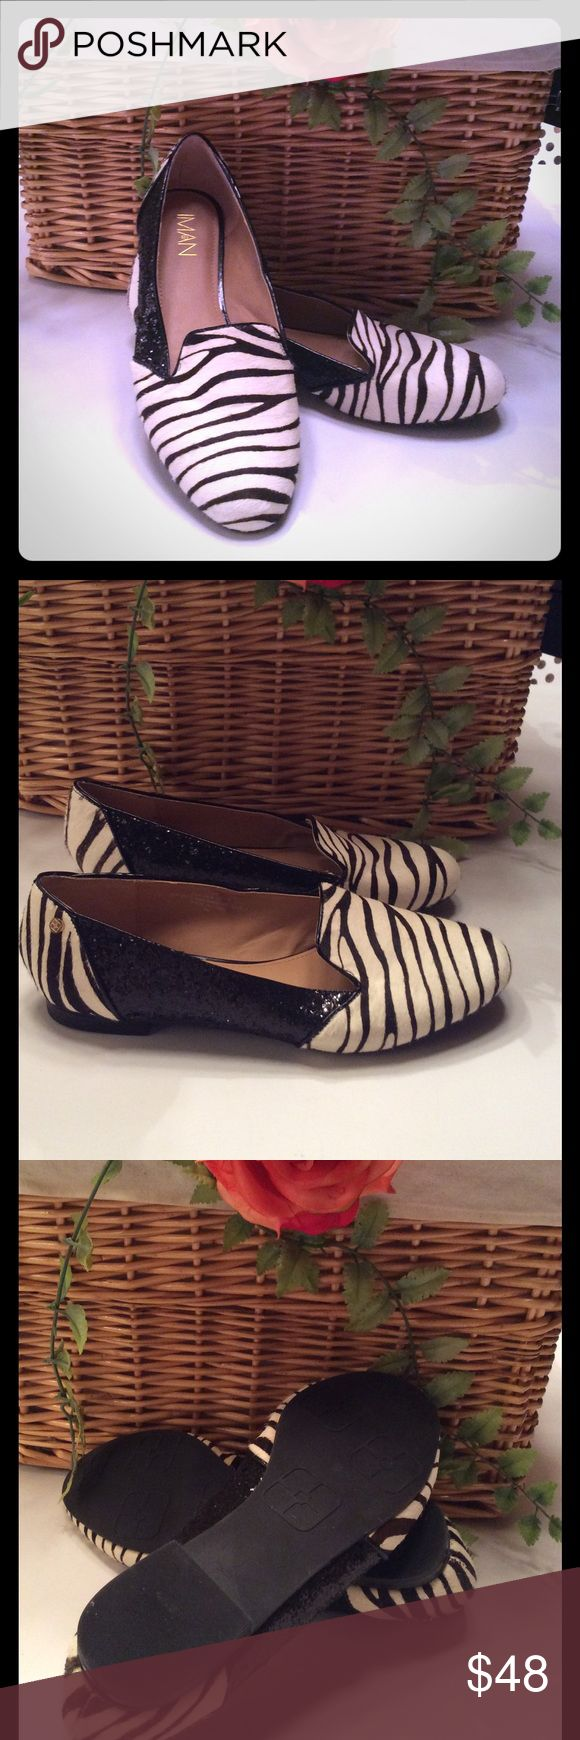 IMAN BLACK & WHITE ZEBRA AND BLACK SEQUIN SHOE IMAN BLACK & WHITE CALF HAIR ZEBRA AND BLACK SEQUIN SHOE. GORGEOUS AND ONLY WORN ONCE. THE SHOE IS A 9W AND IS IN EXCELLENT CONDITION. FROM HSN. Iman Shoes Flats & Loafers